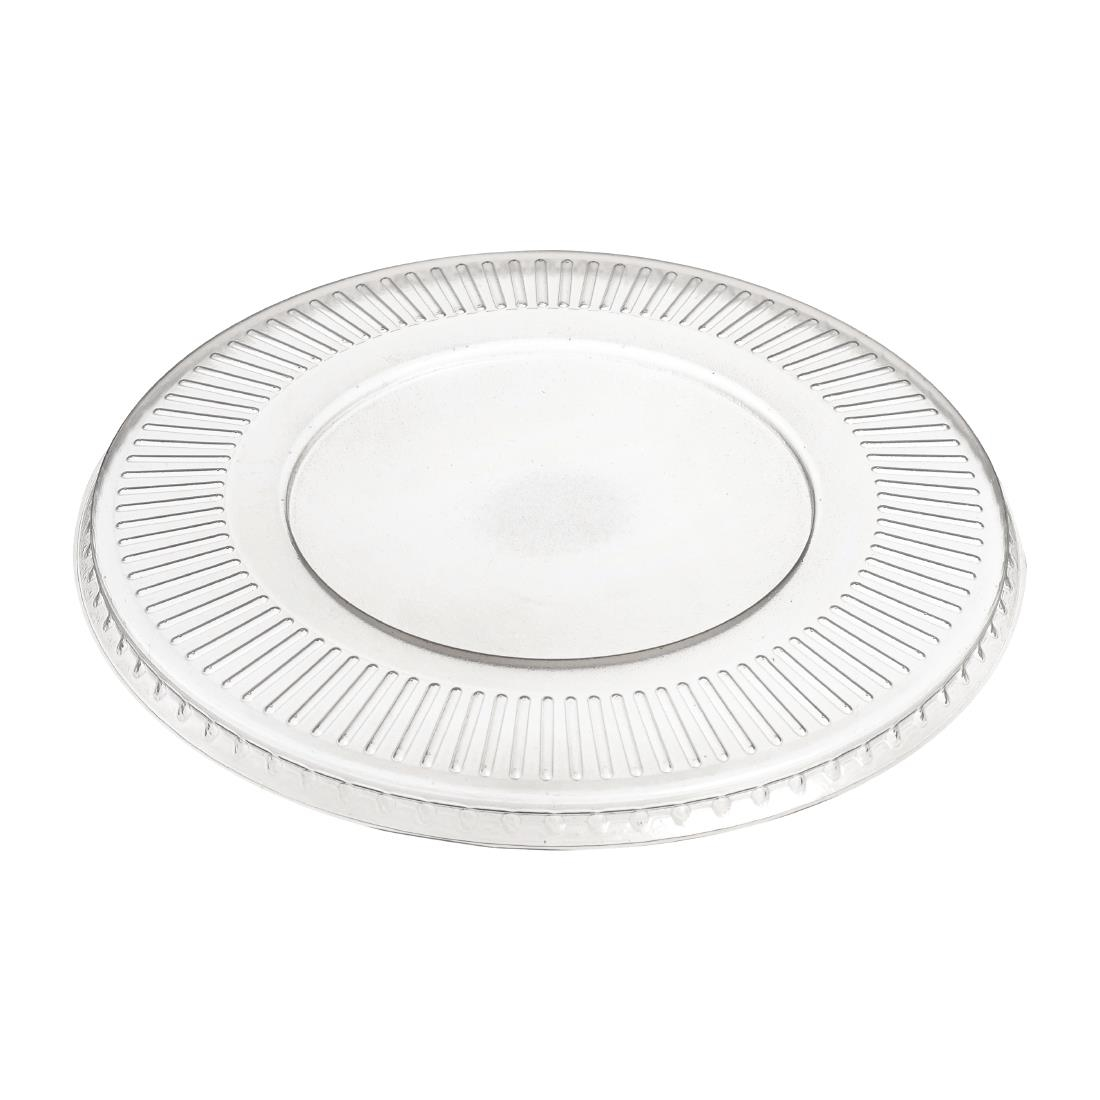 Image of Solia Recyclable Polypropylene Mix Bagasse Bowl Lids 1500ml (Pack of 50) Pack of 50